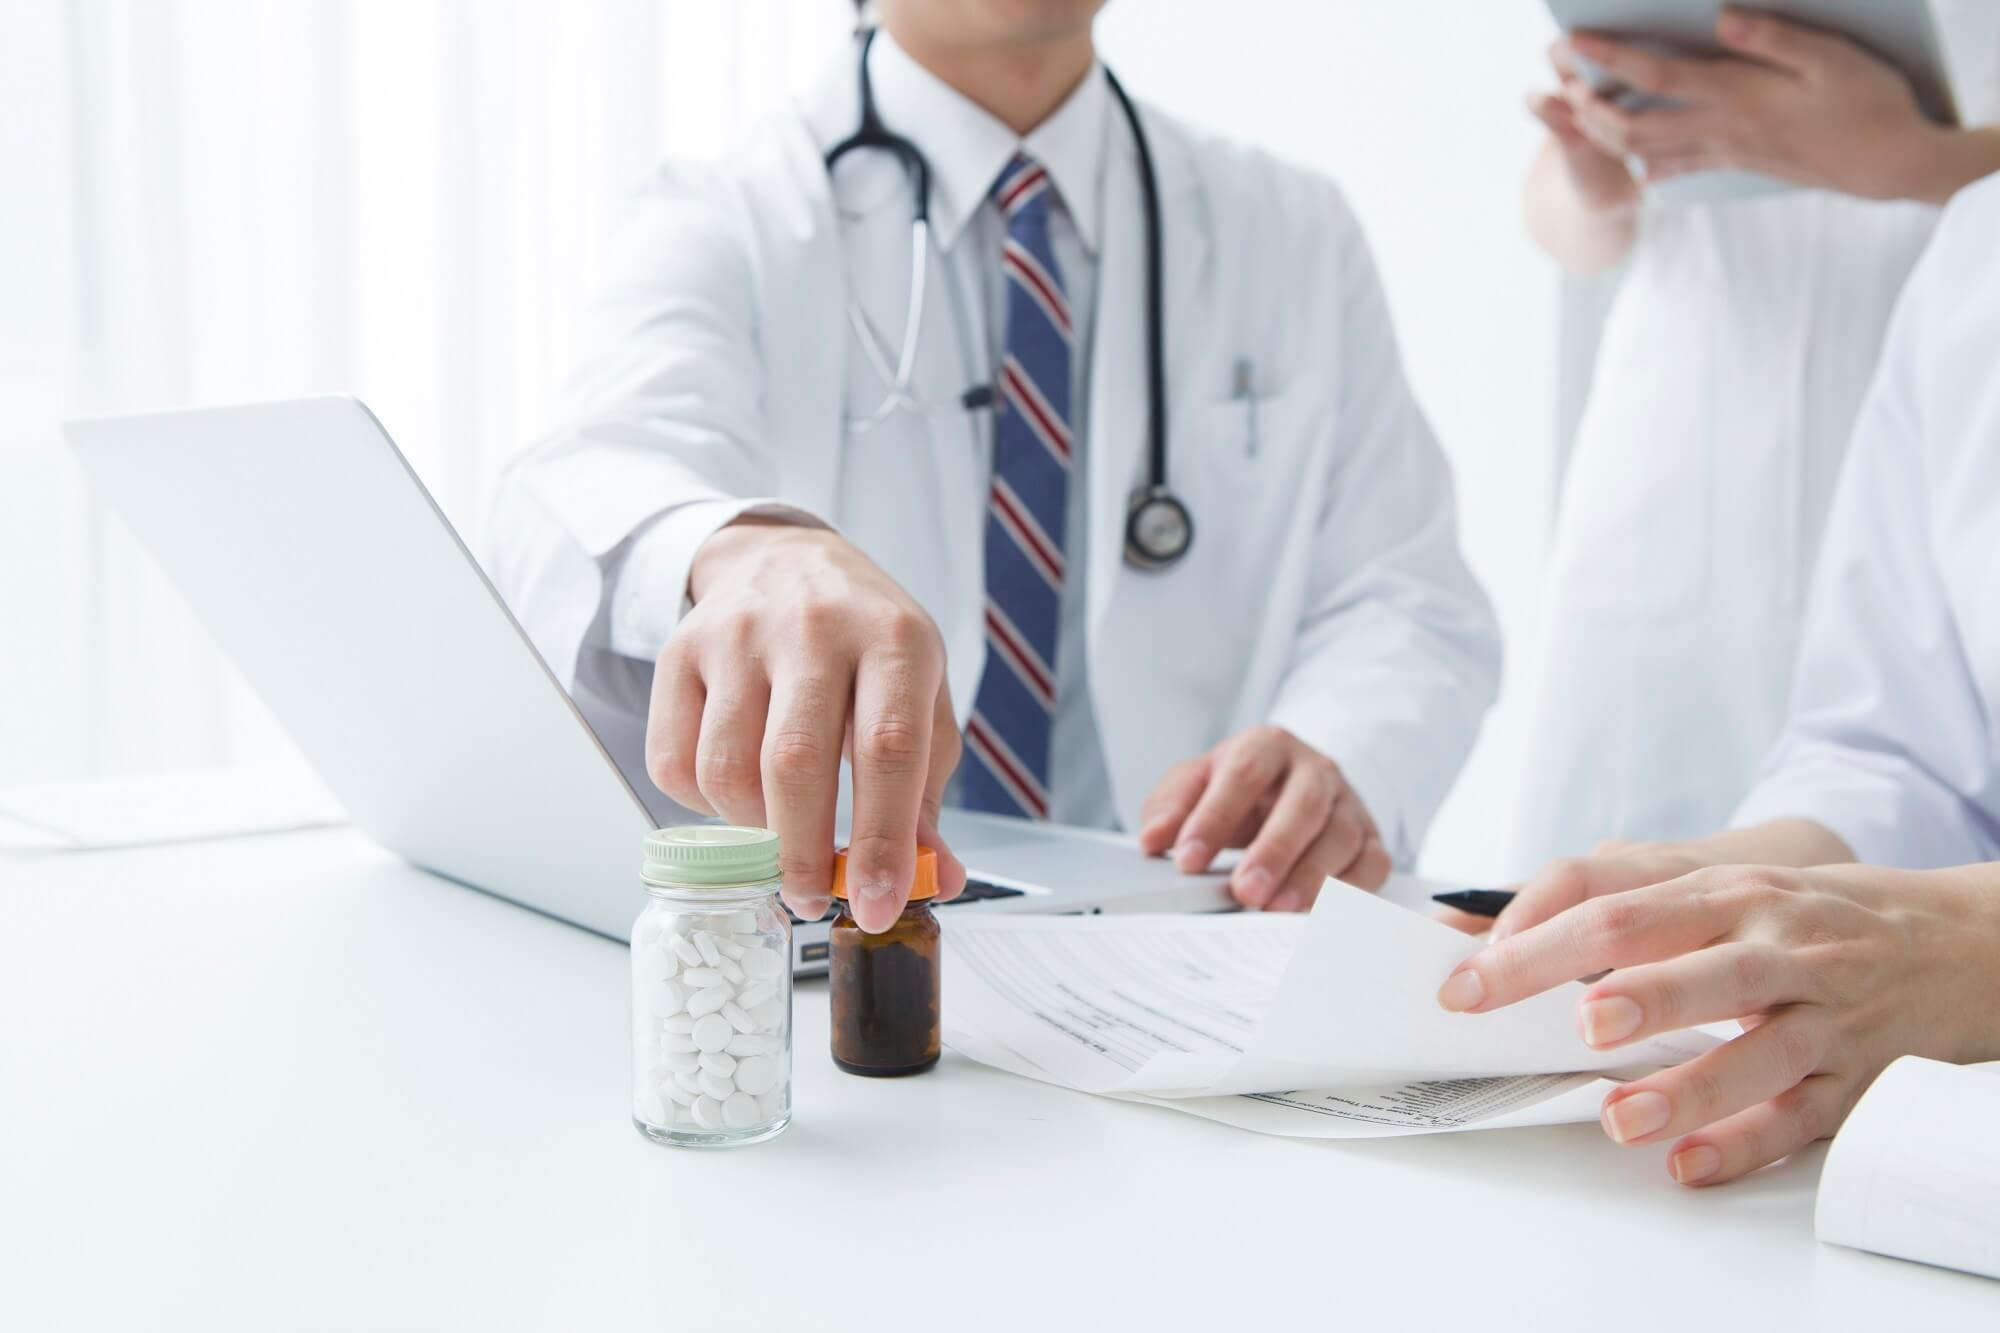 Clinicians May Not Be Addressing Functional Impairment When Prescribing HF Medication